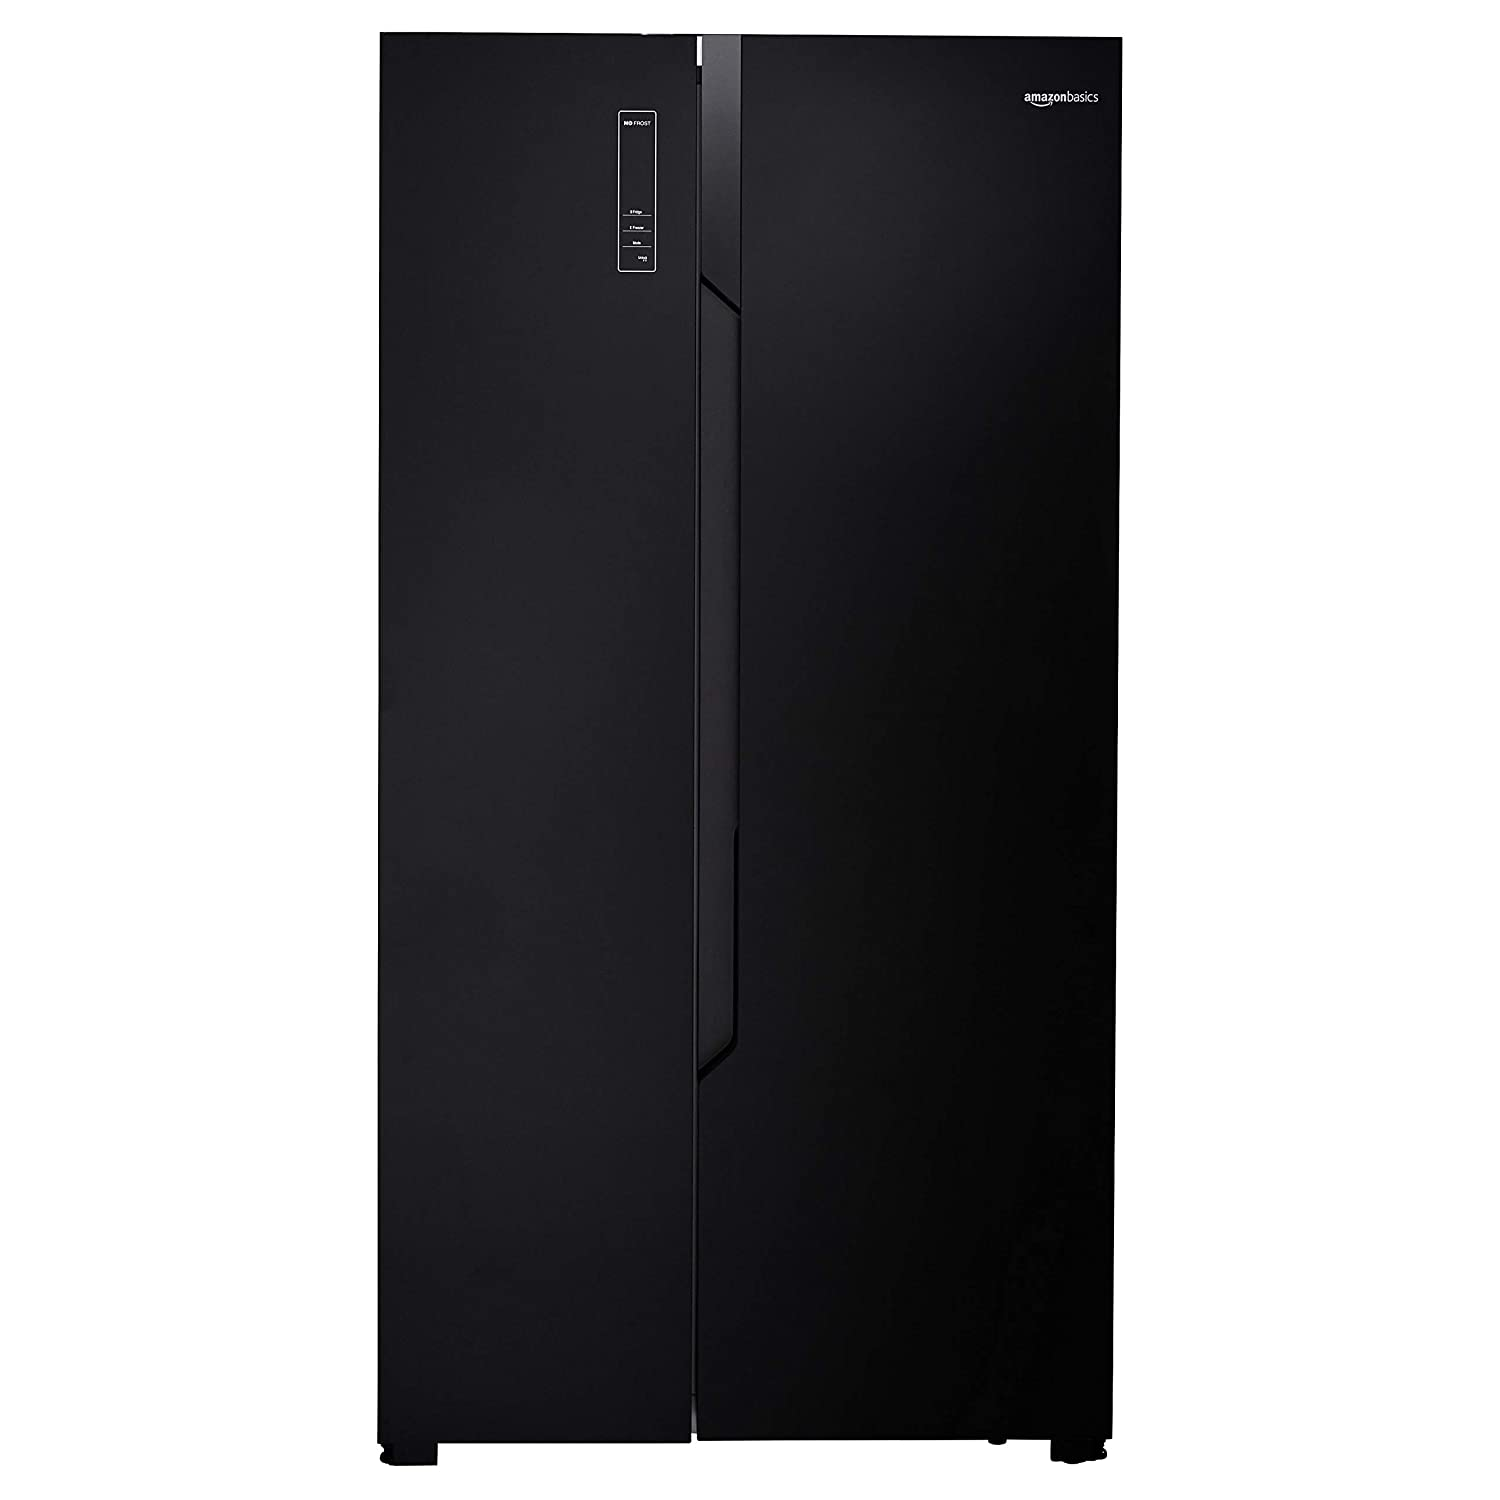 Best Refrigerators to Buy in India